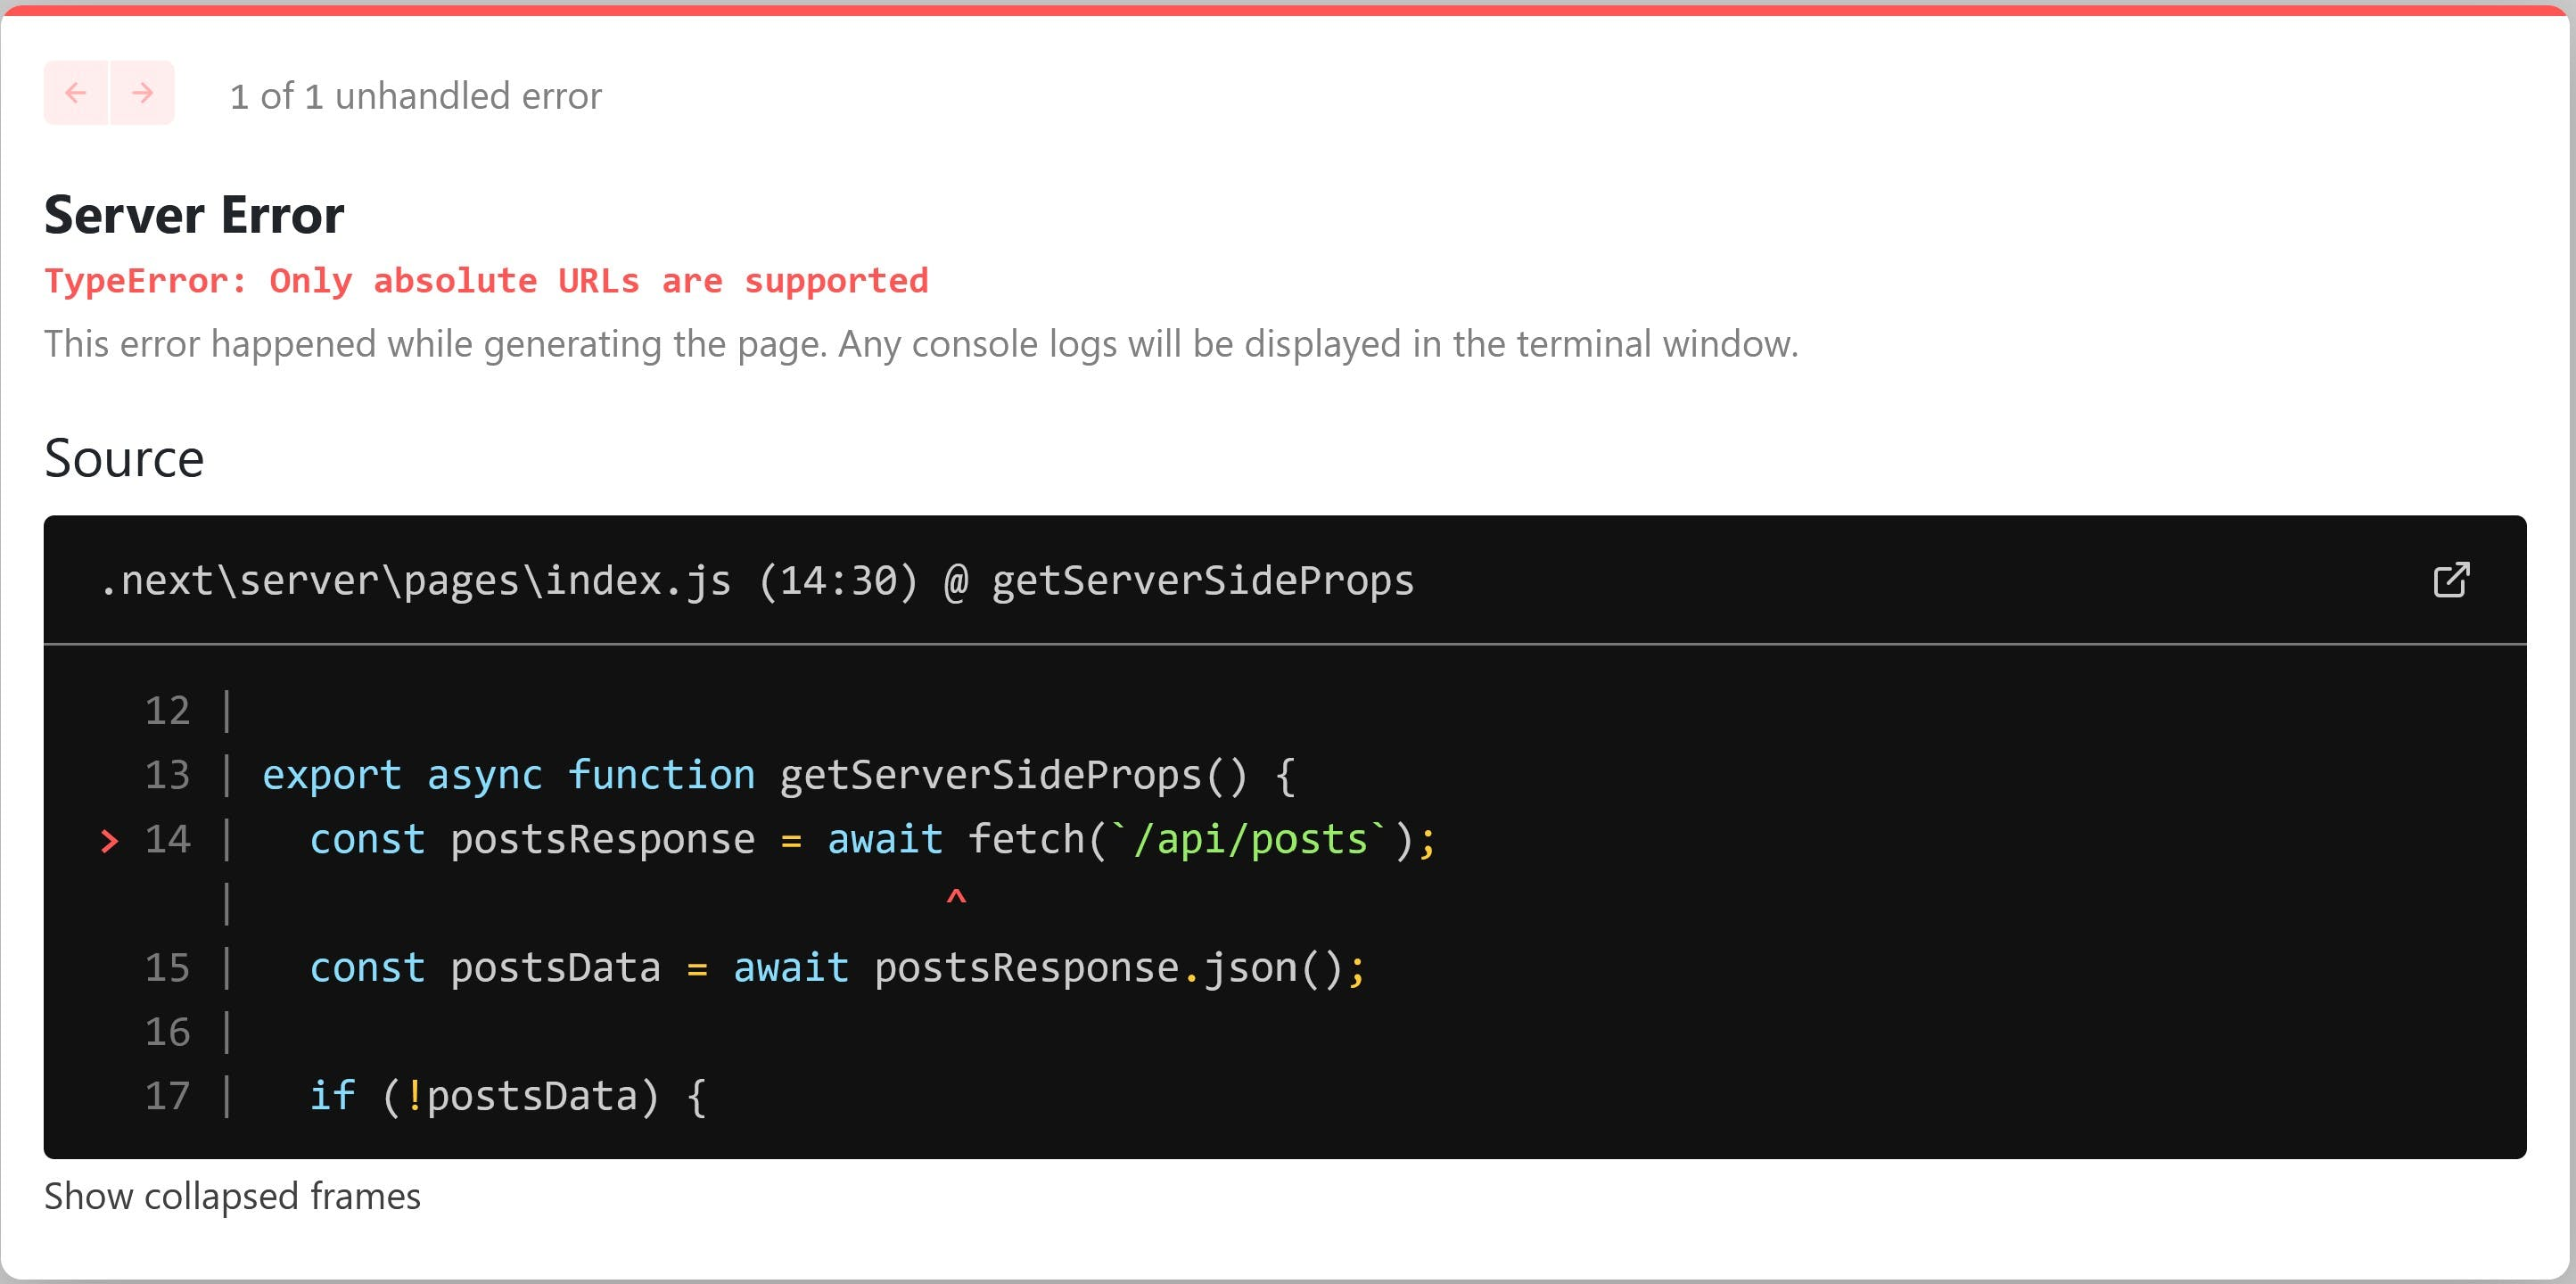 getServerSideProps only absolute URL's are supported error